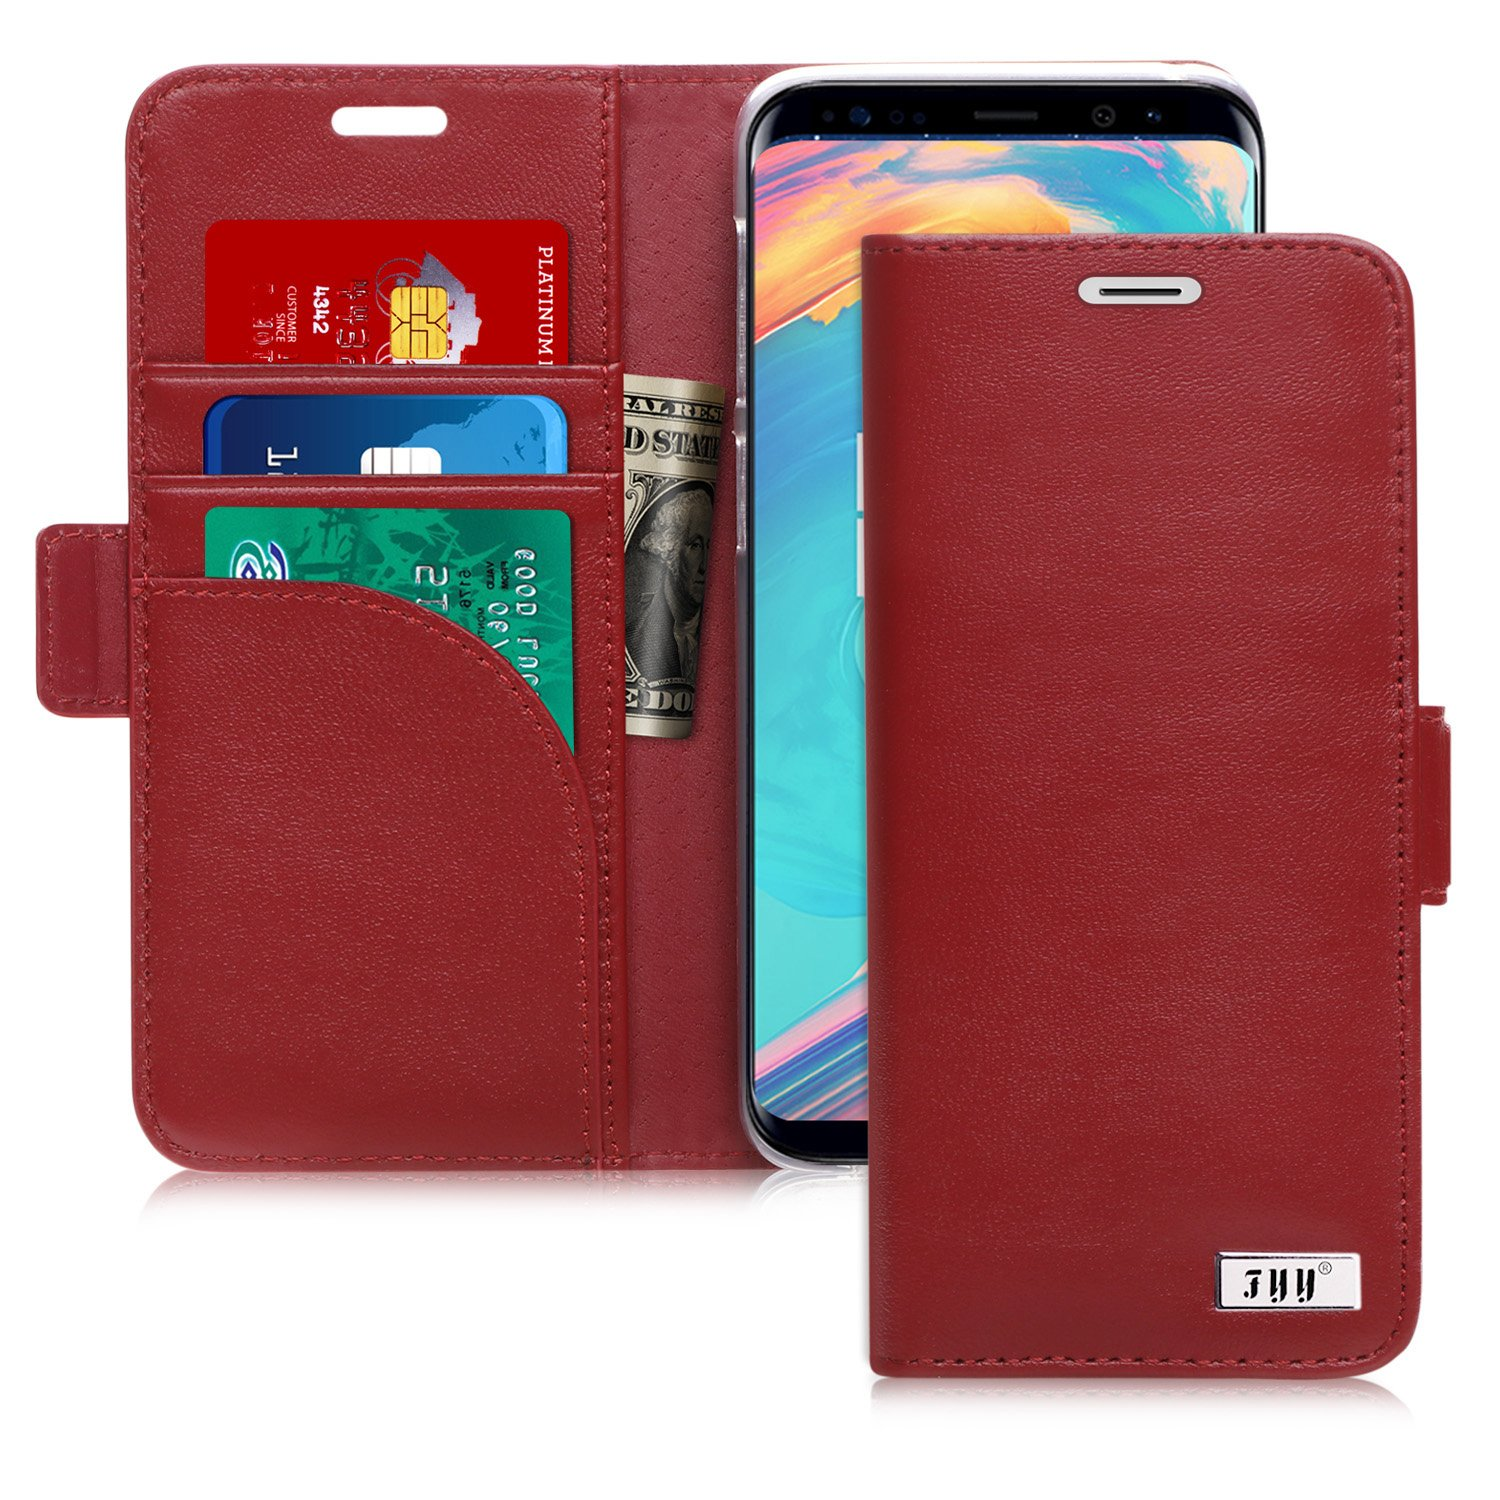 FYY Case for Galaxy S9 Plus, Genuine Leather Handmade Wallet Case with [Prevent Card Information Leaking Technique] and [Kickstand Feature] for Samsung Galaxy S9 Plus Wine Red